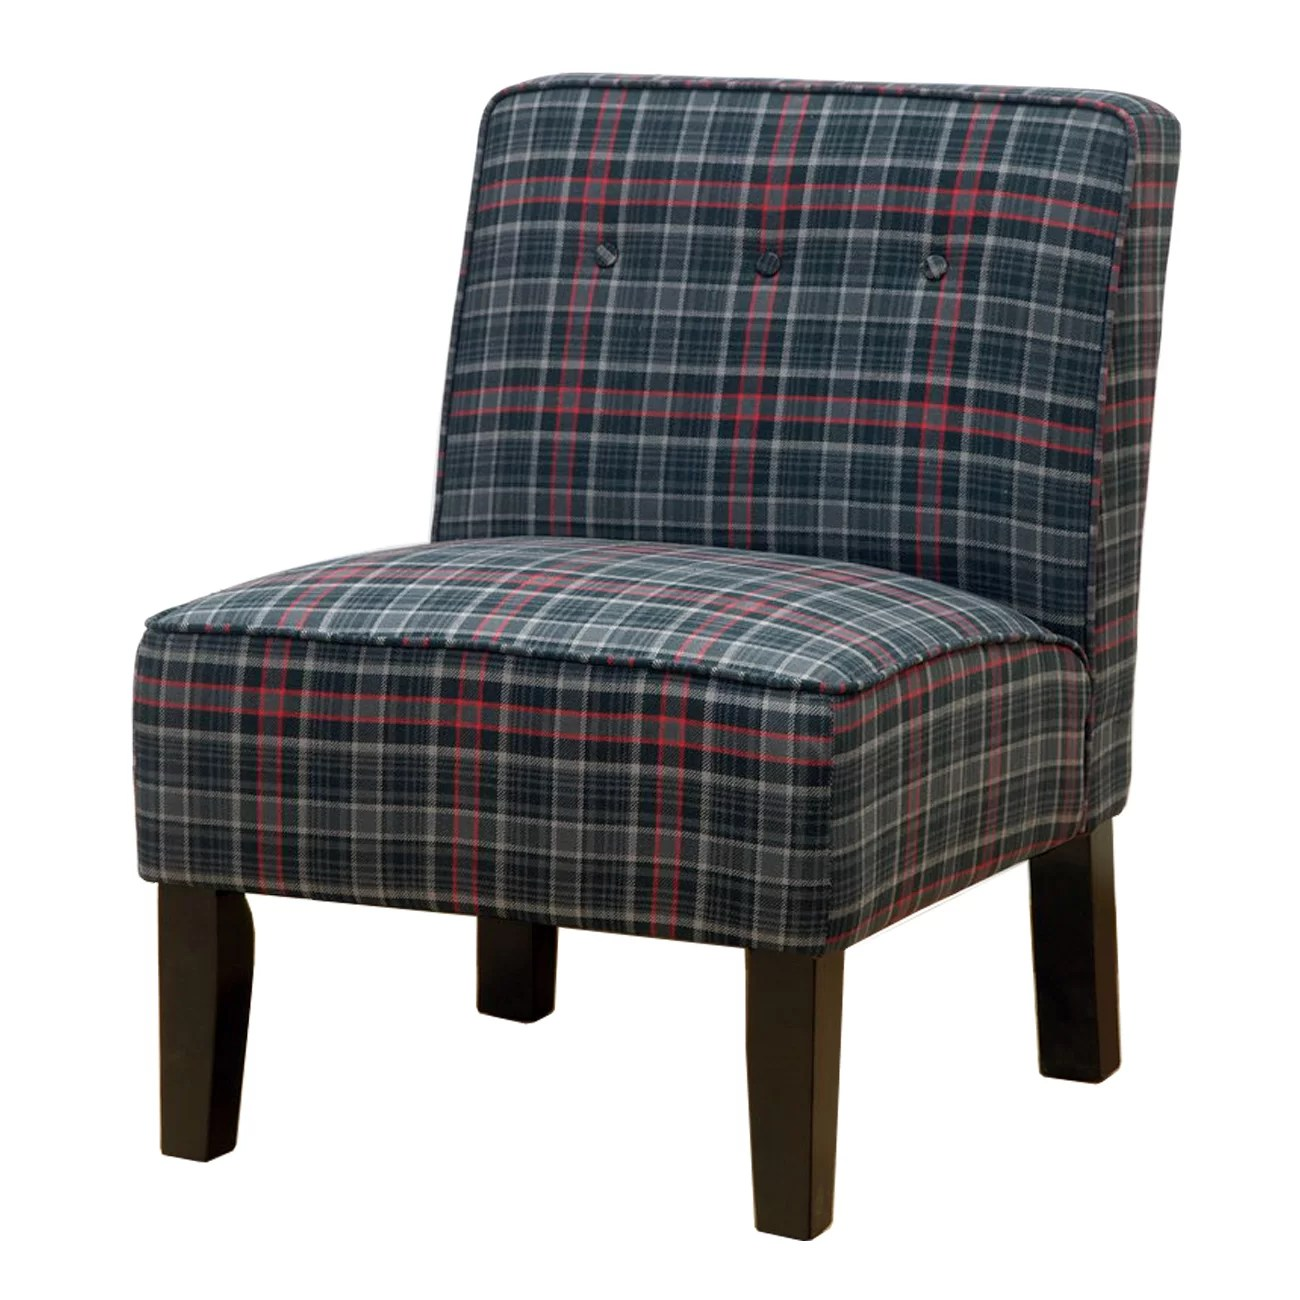 Plaid Chair Three Posts Laurens Slipper Chair In Neo Plaid And Reviews